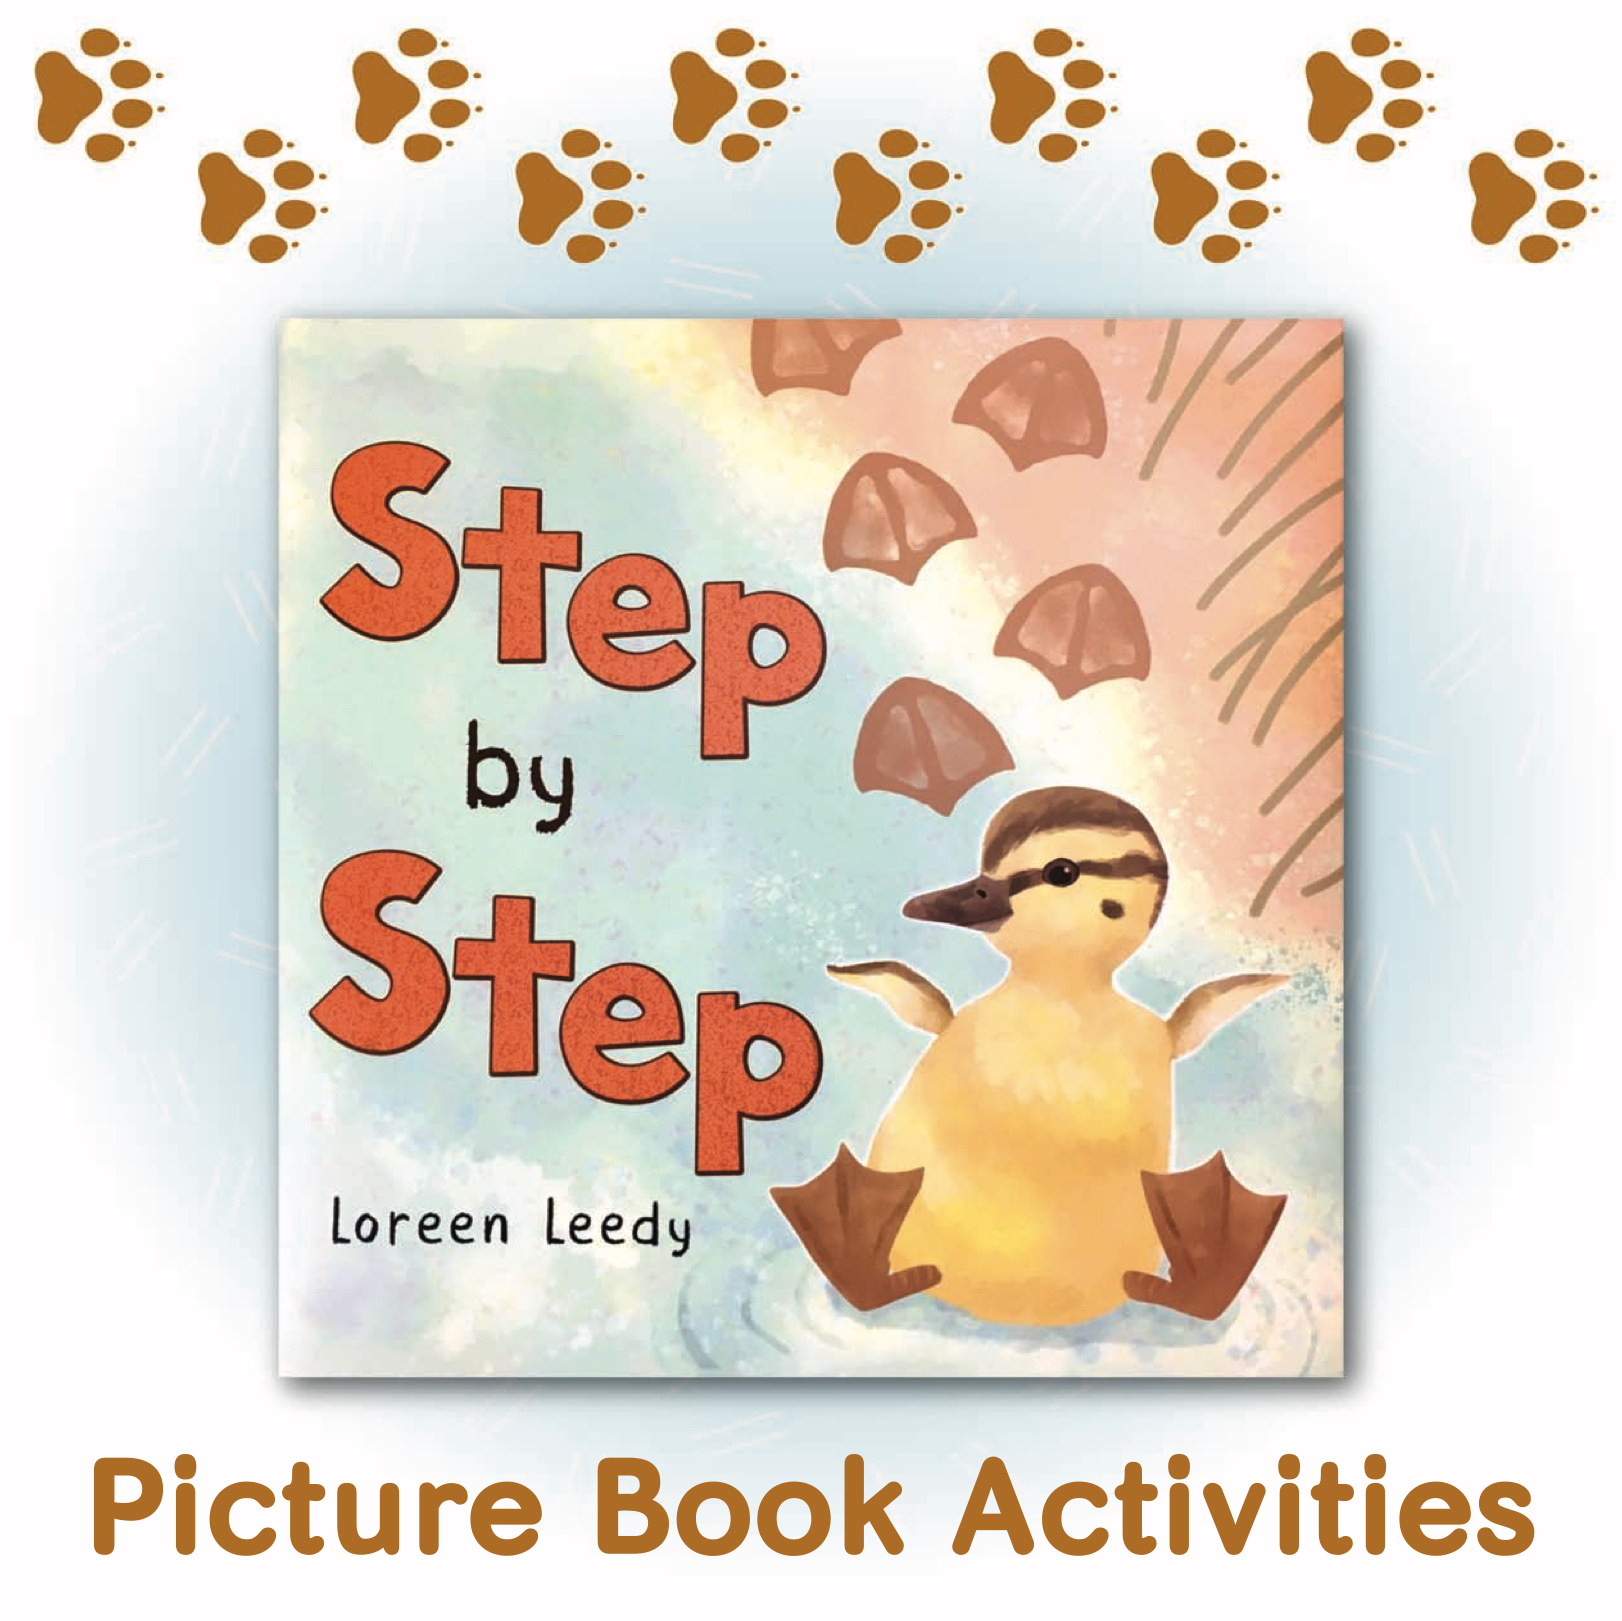 Click here to view the Step by Step activity pages